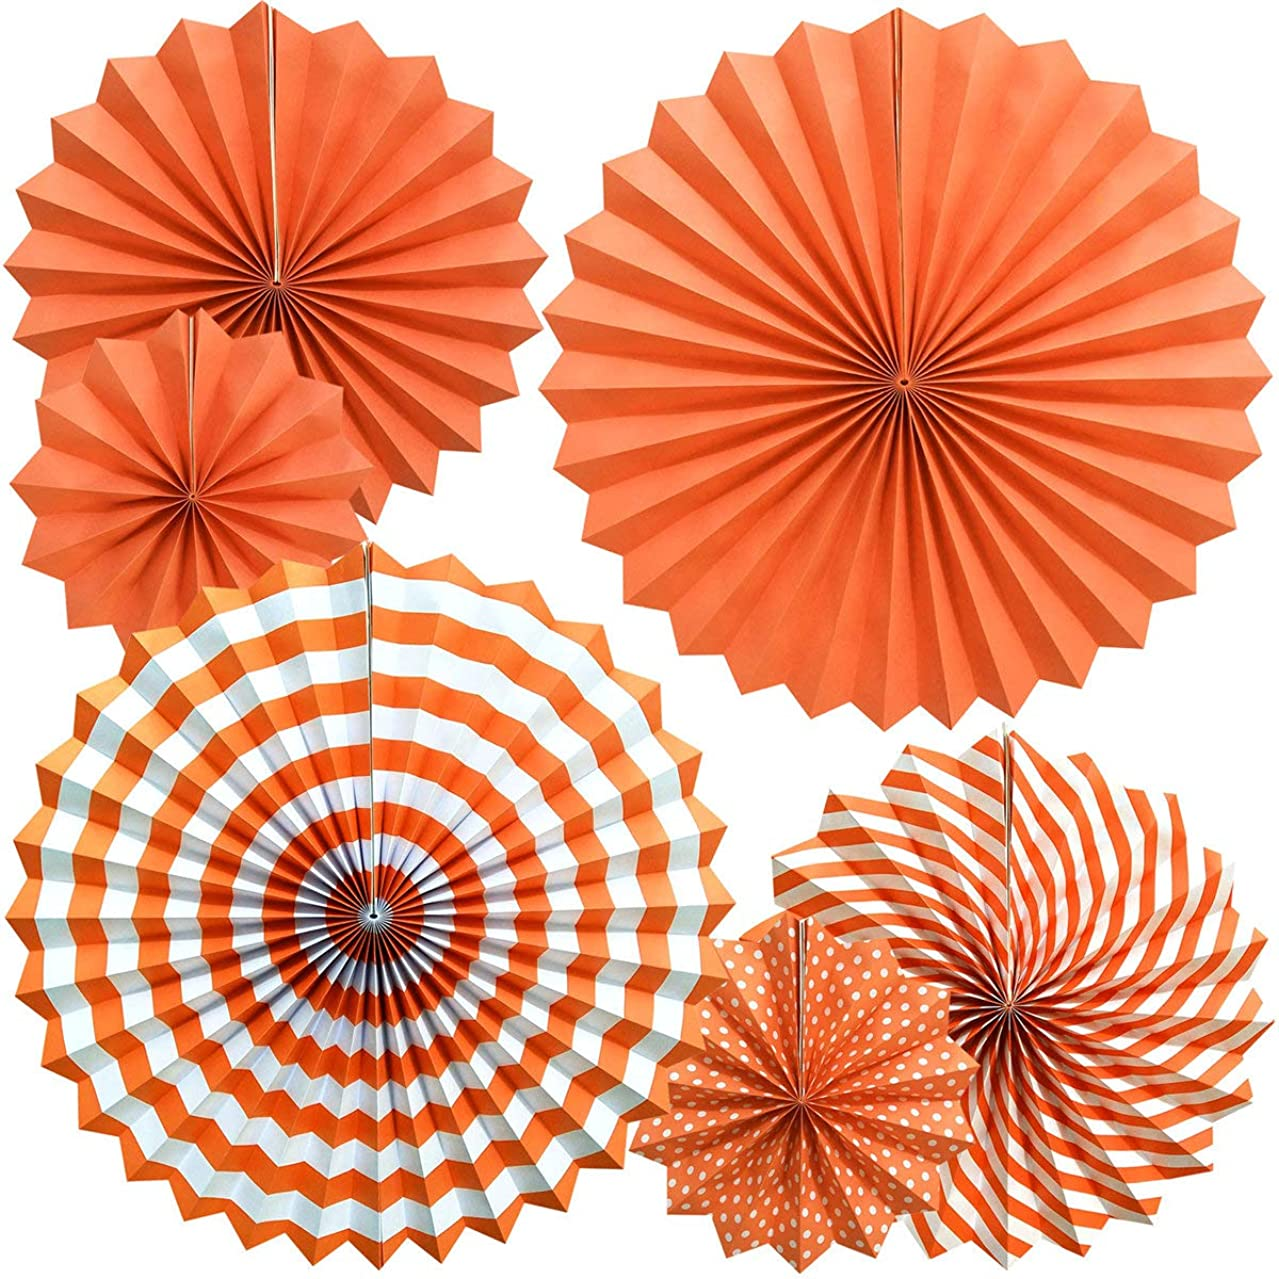 OMyTea Hanging Paper Fans Decorations Kit for Wall - Set of 6 Circle Rosettes Tissue Paper Fans Bulk for Party Favors, Wedding, Birthday, Festival, Christmas, Events, Home Decor (Orange)